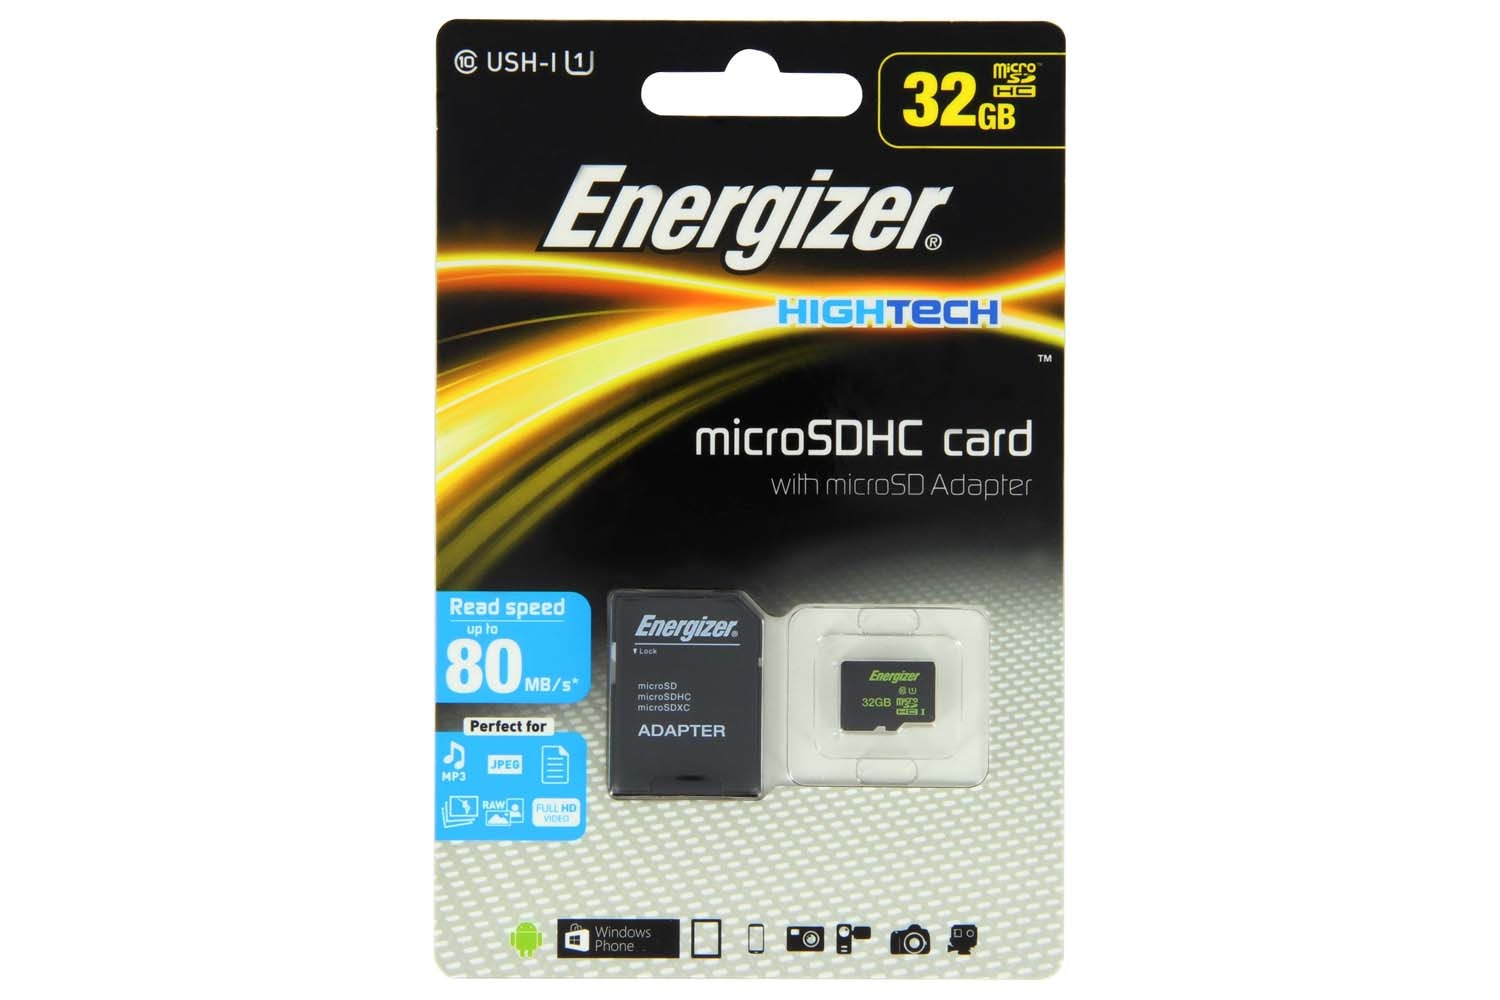 Energizer Hightech Micro SDHC Card and Micro SD Adapter | 32GB